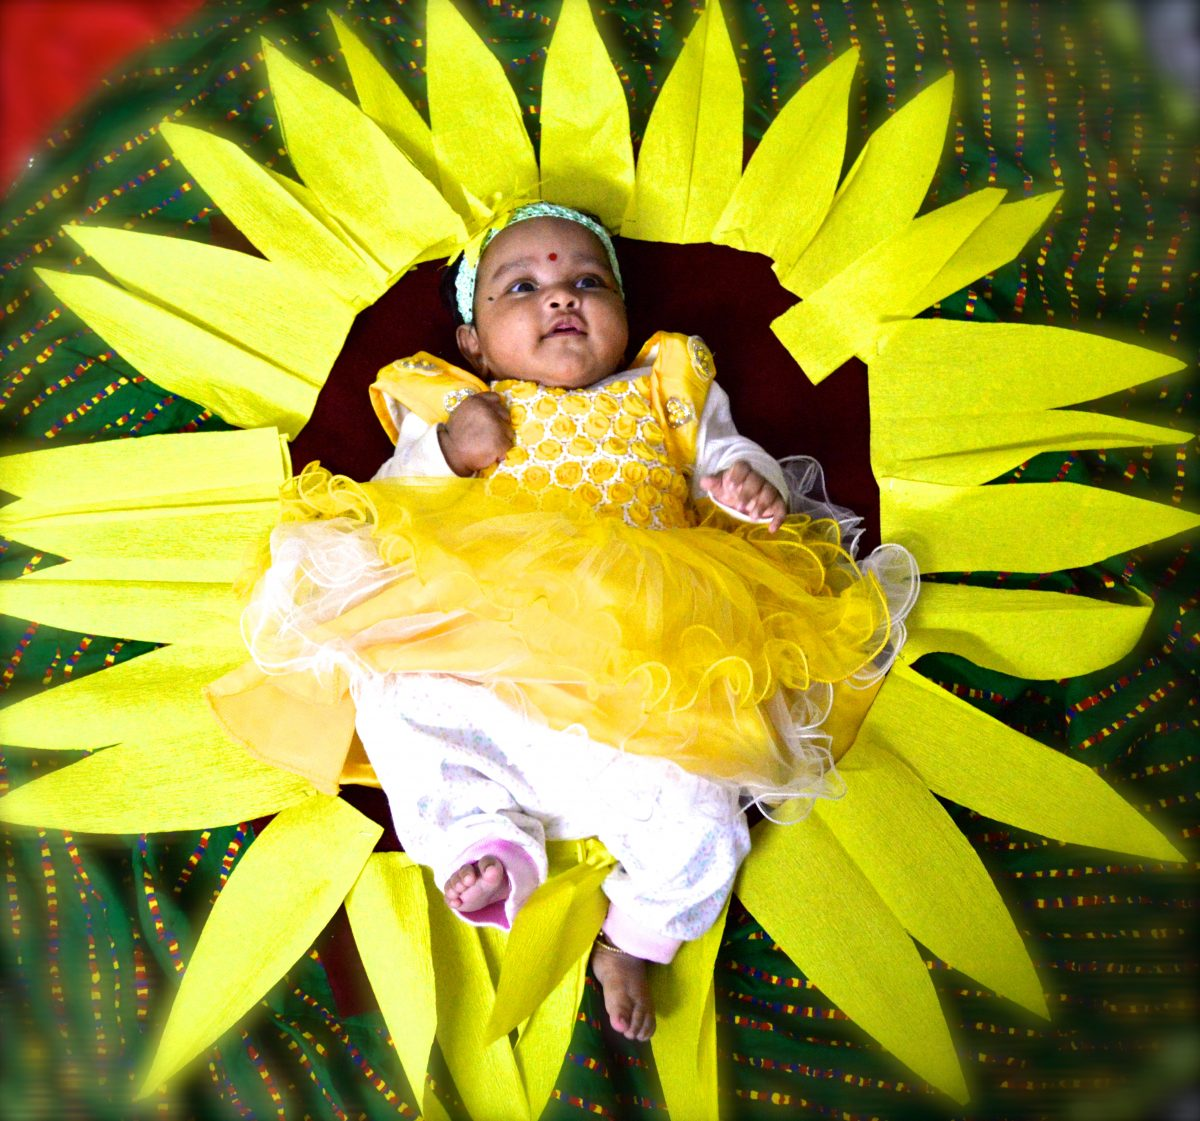 Kids Photoshoot Props 2 : Sunflower